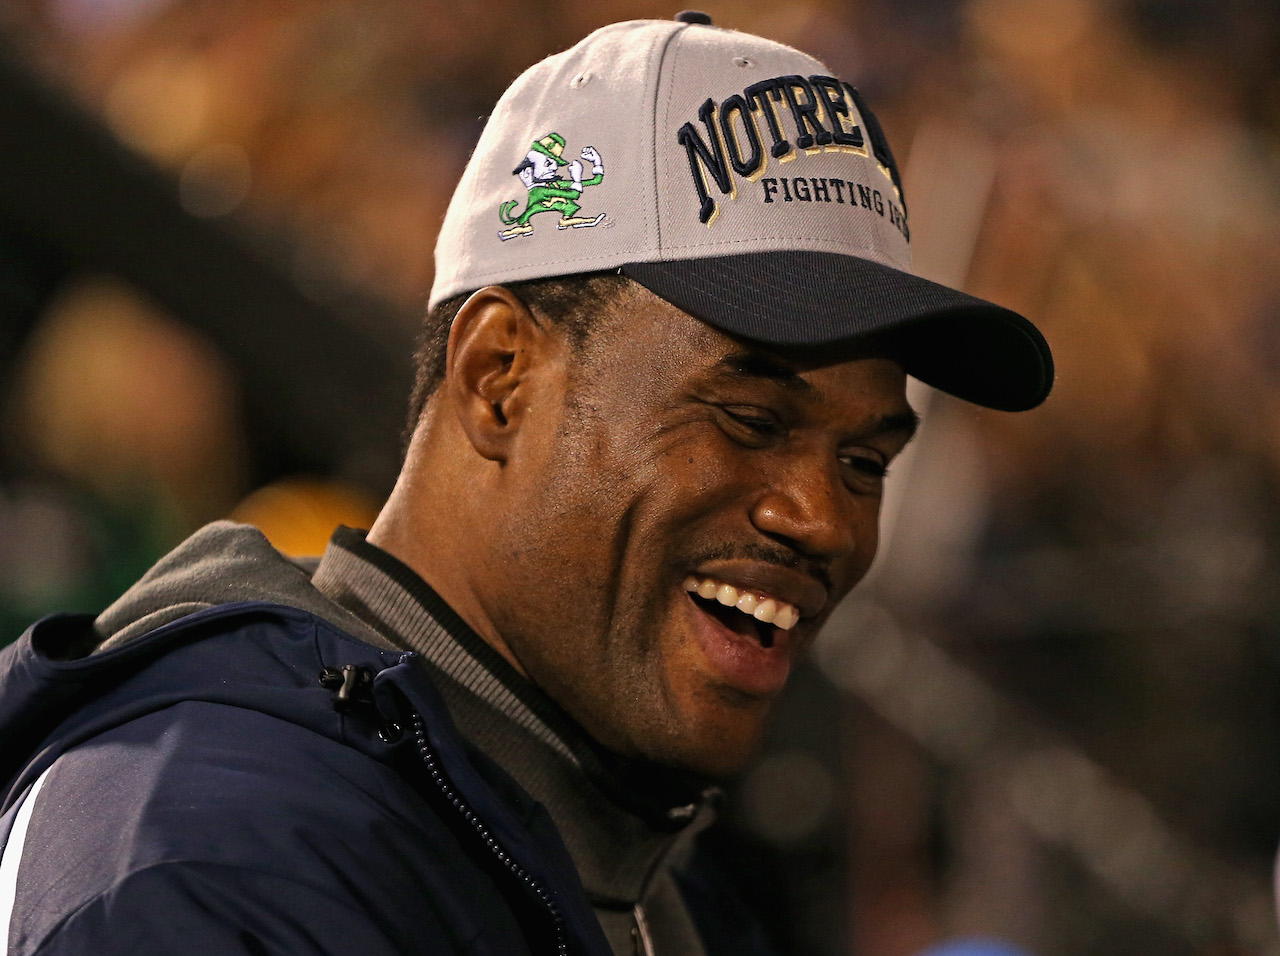 David Robinson served his country